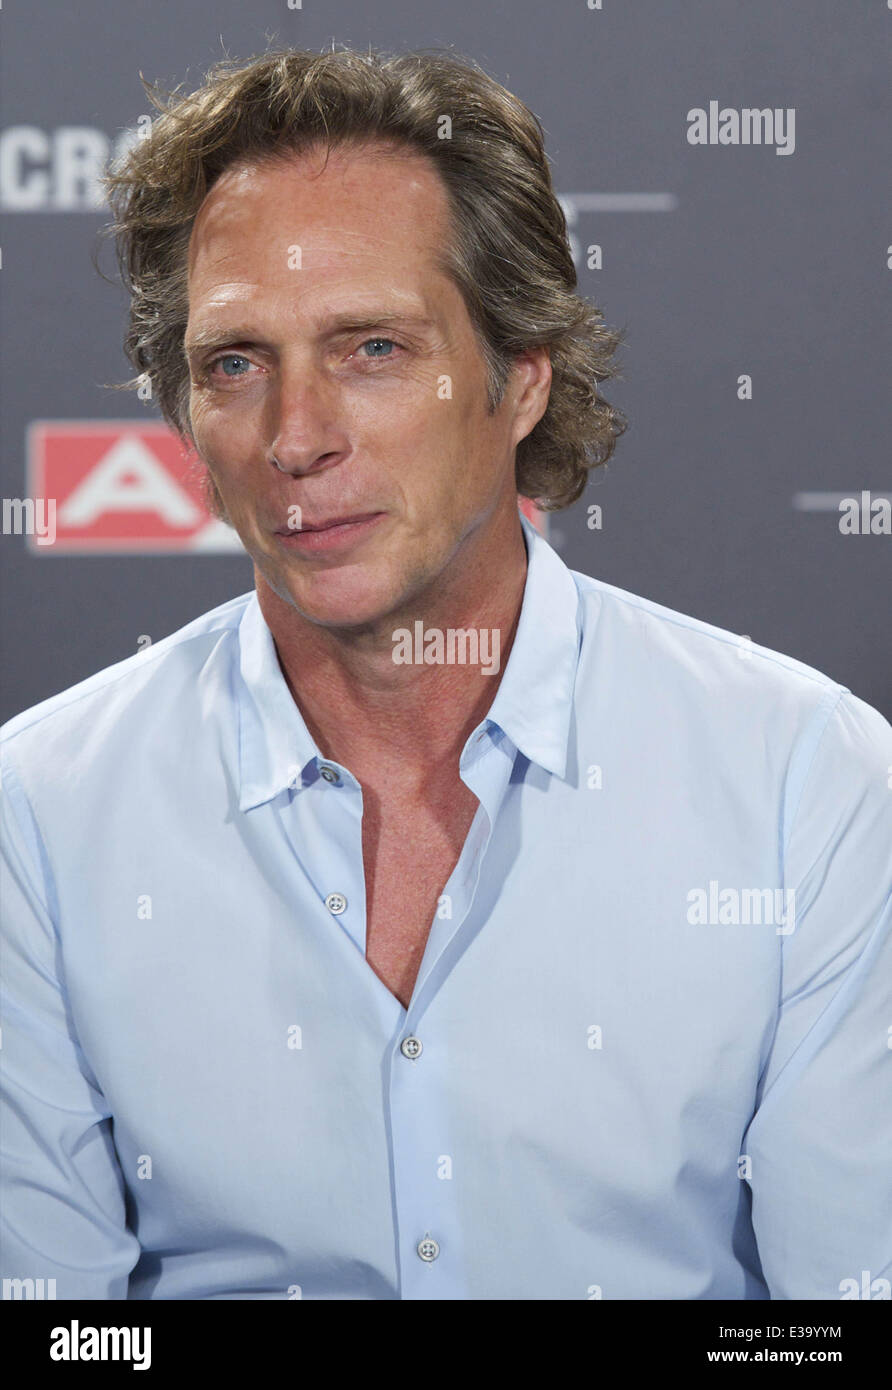 William Fichtner attends a photocall to promote AXN TV series Stock